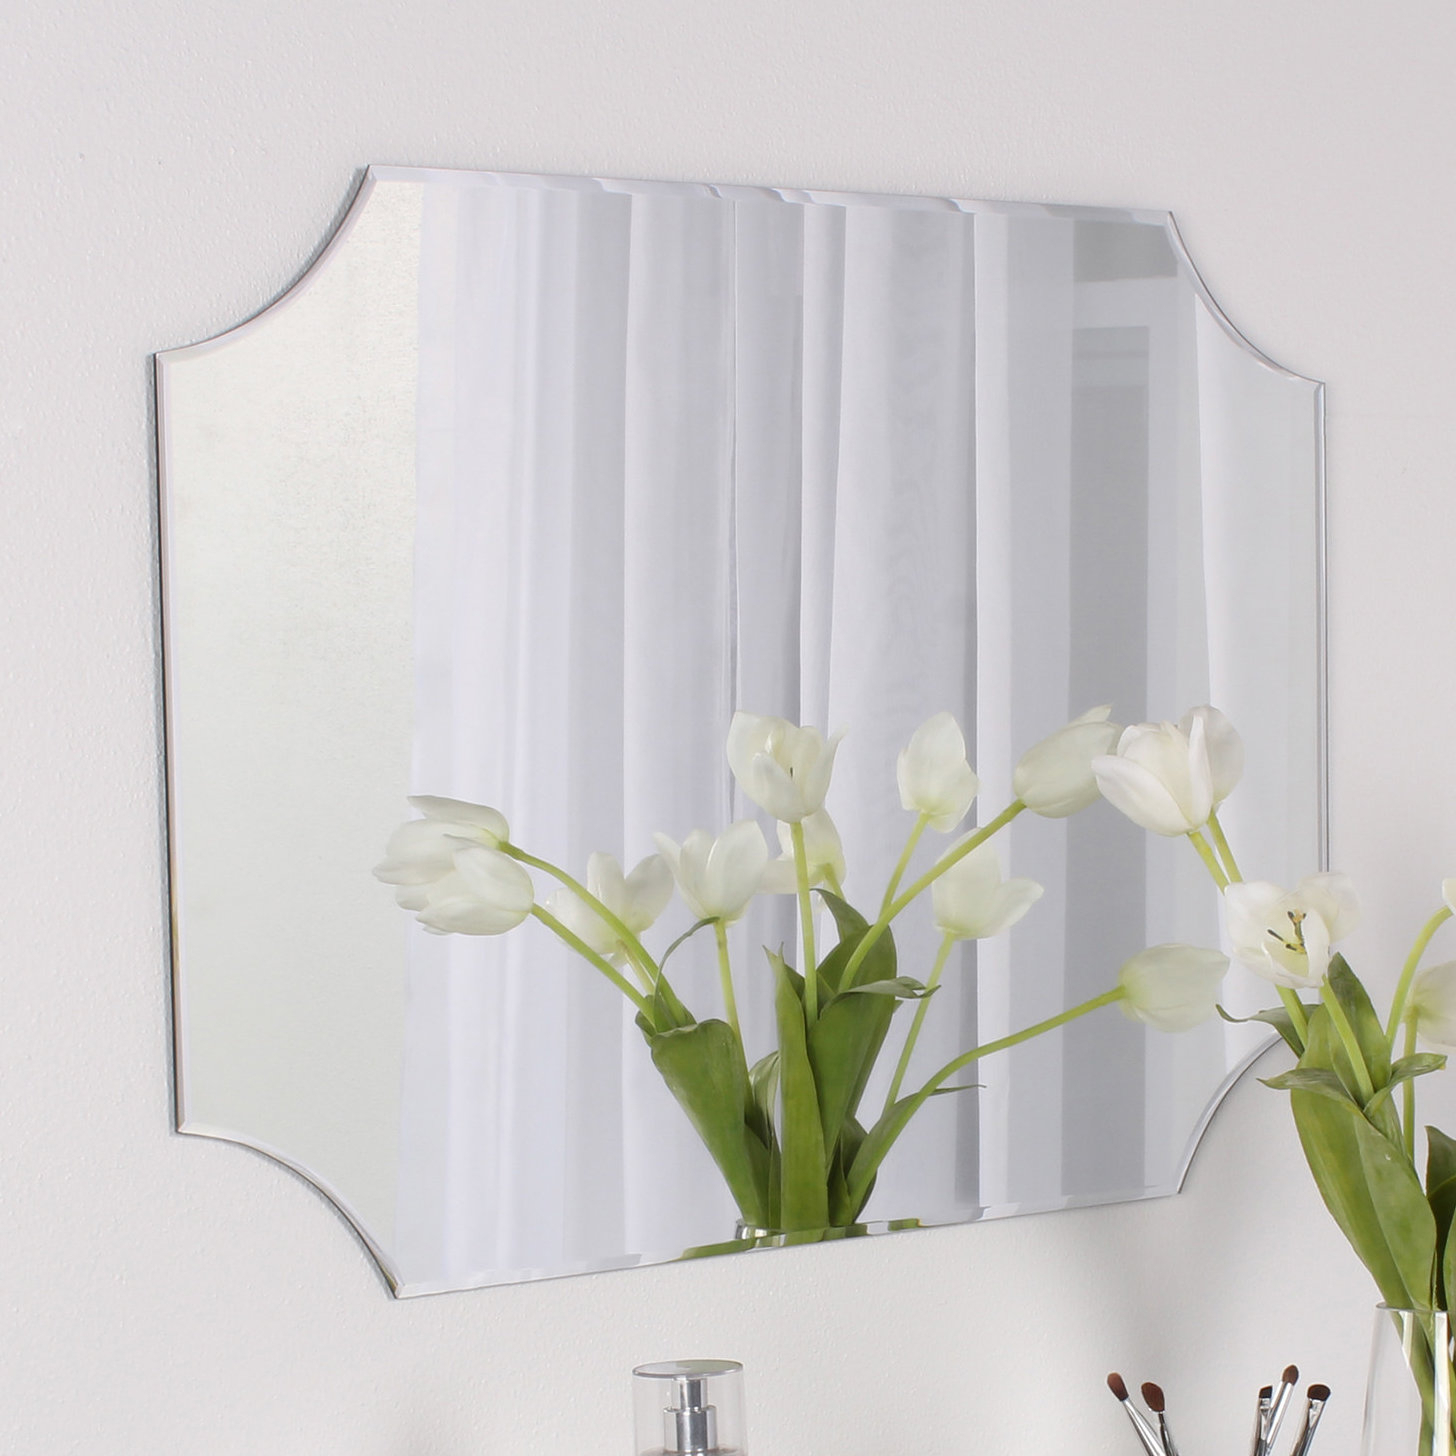 Reign Frameless Rectangle Scalloped Beveled Wall Mirror Within Reign Frameless Oval Scalloped Beveled Wall Mirrors (Image 17 of 20)